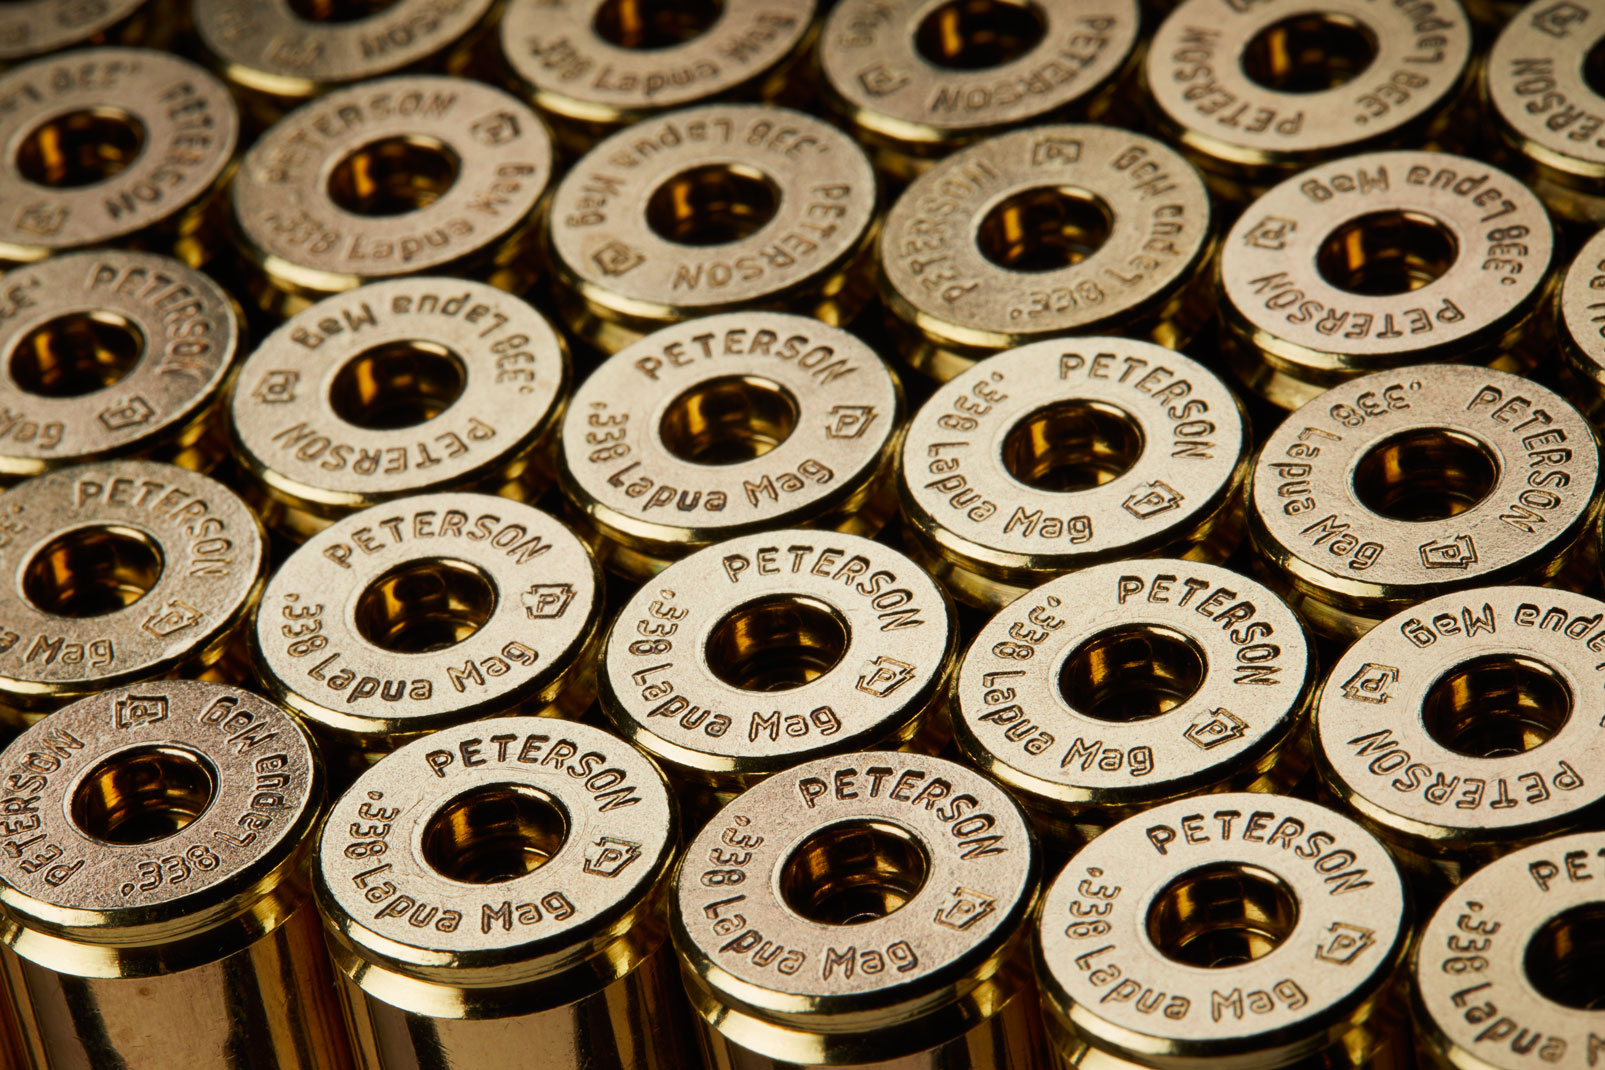 www.petersoncartridge.com